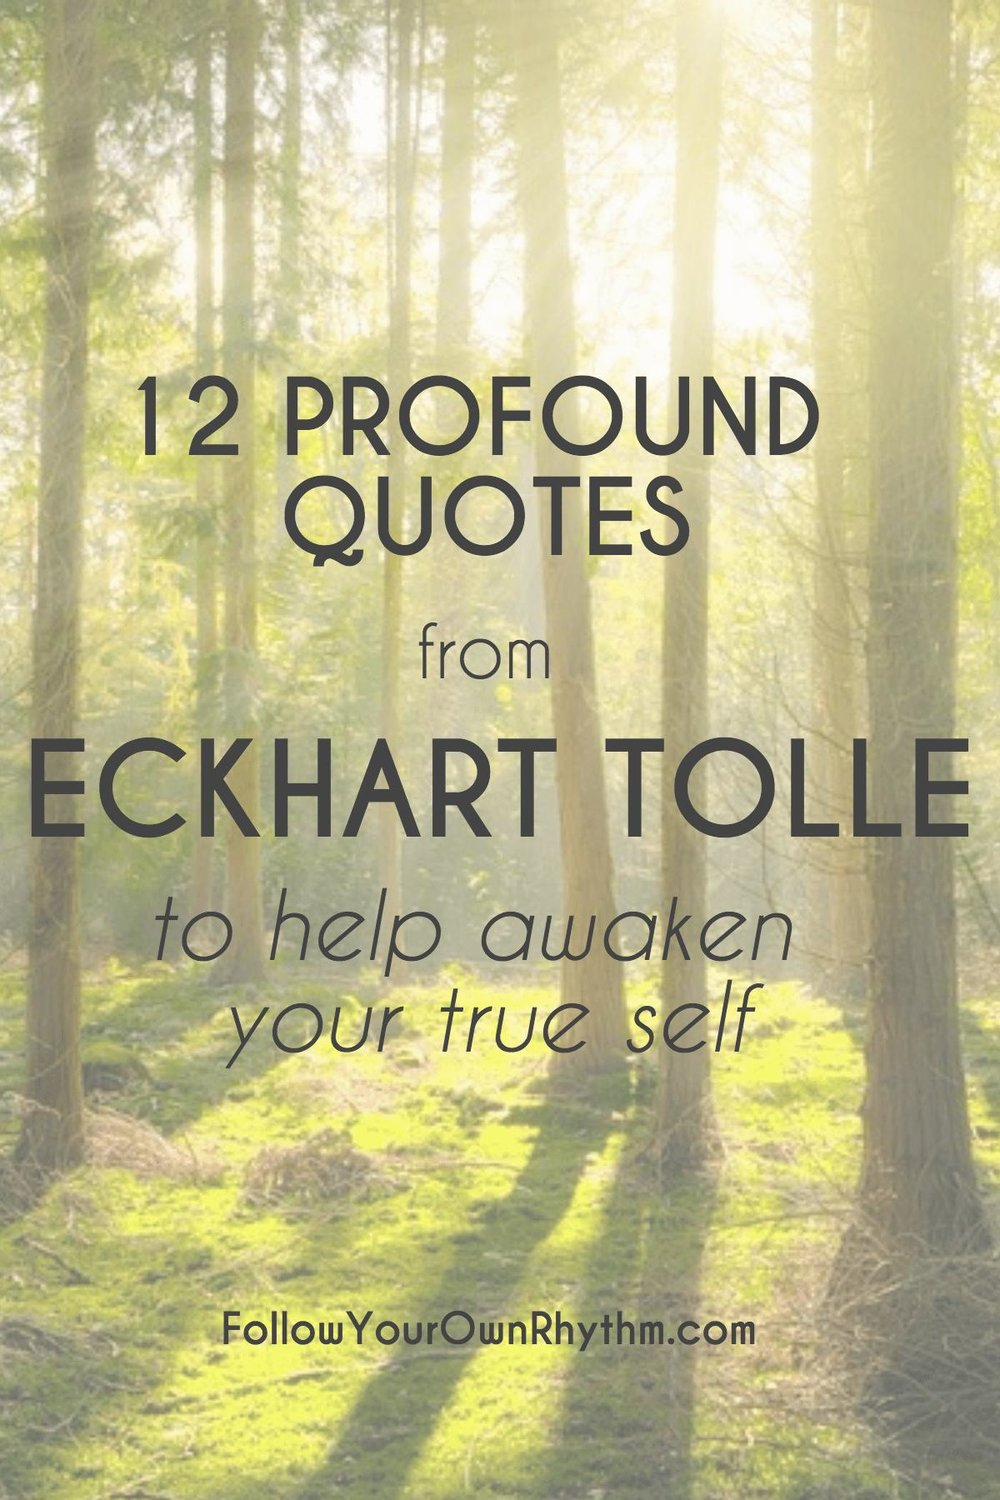 Eckhart Tolle Quotes | 12 Profound Quotes From Eckhart Tolle To Help Awaken Your True Self